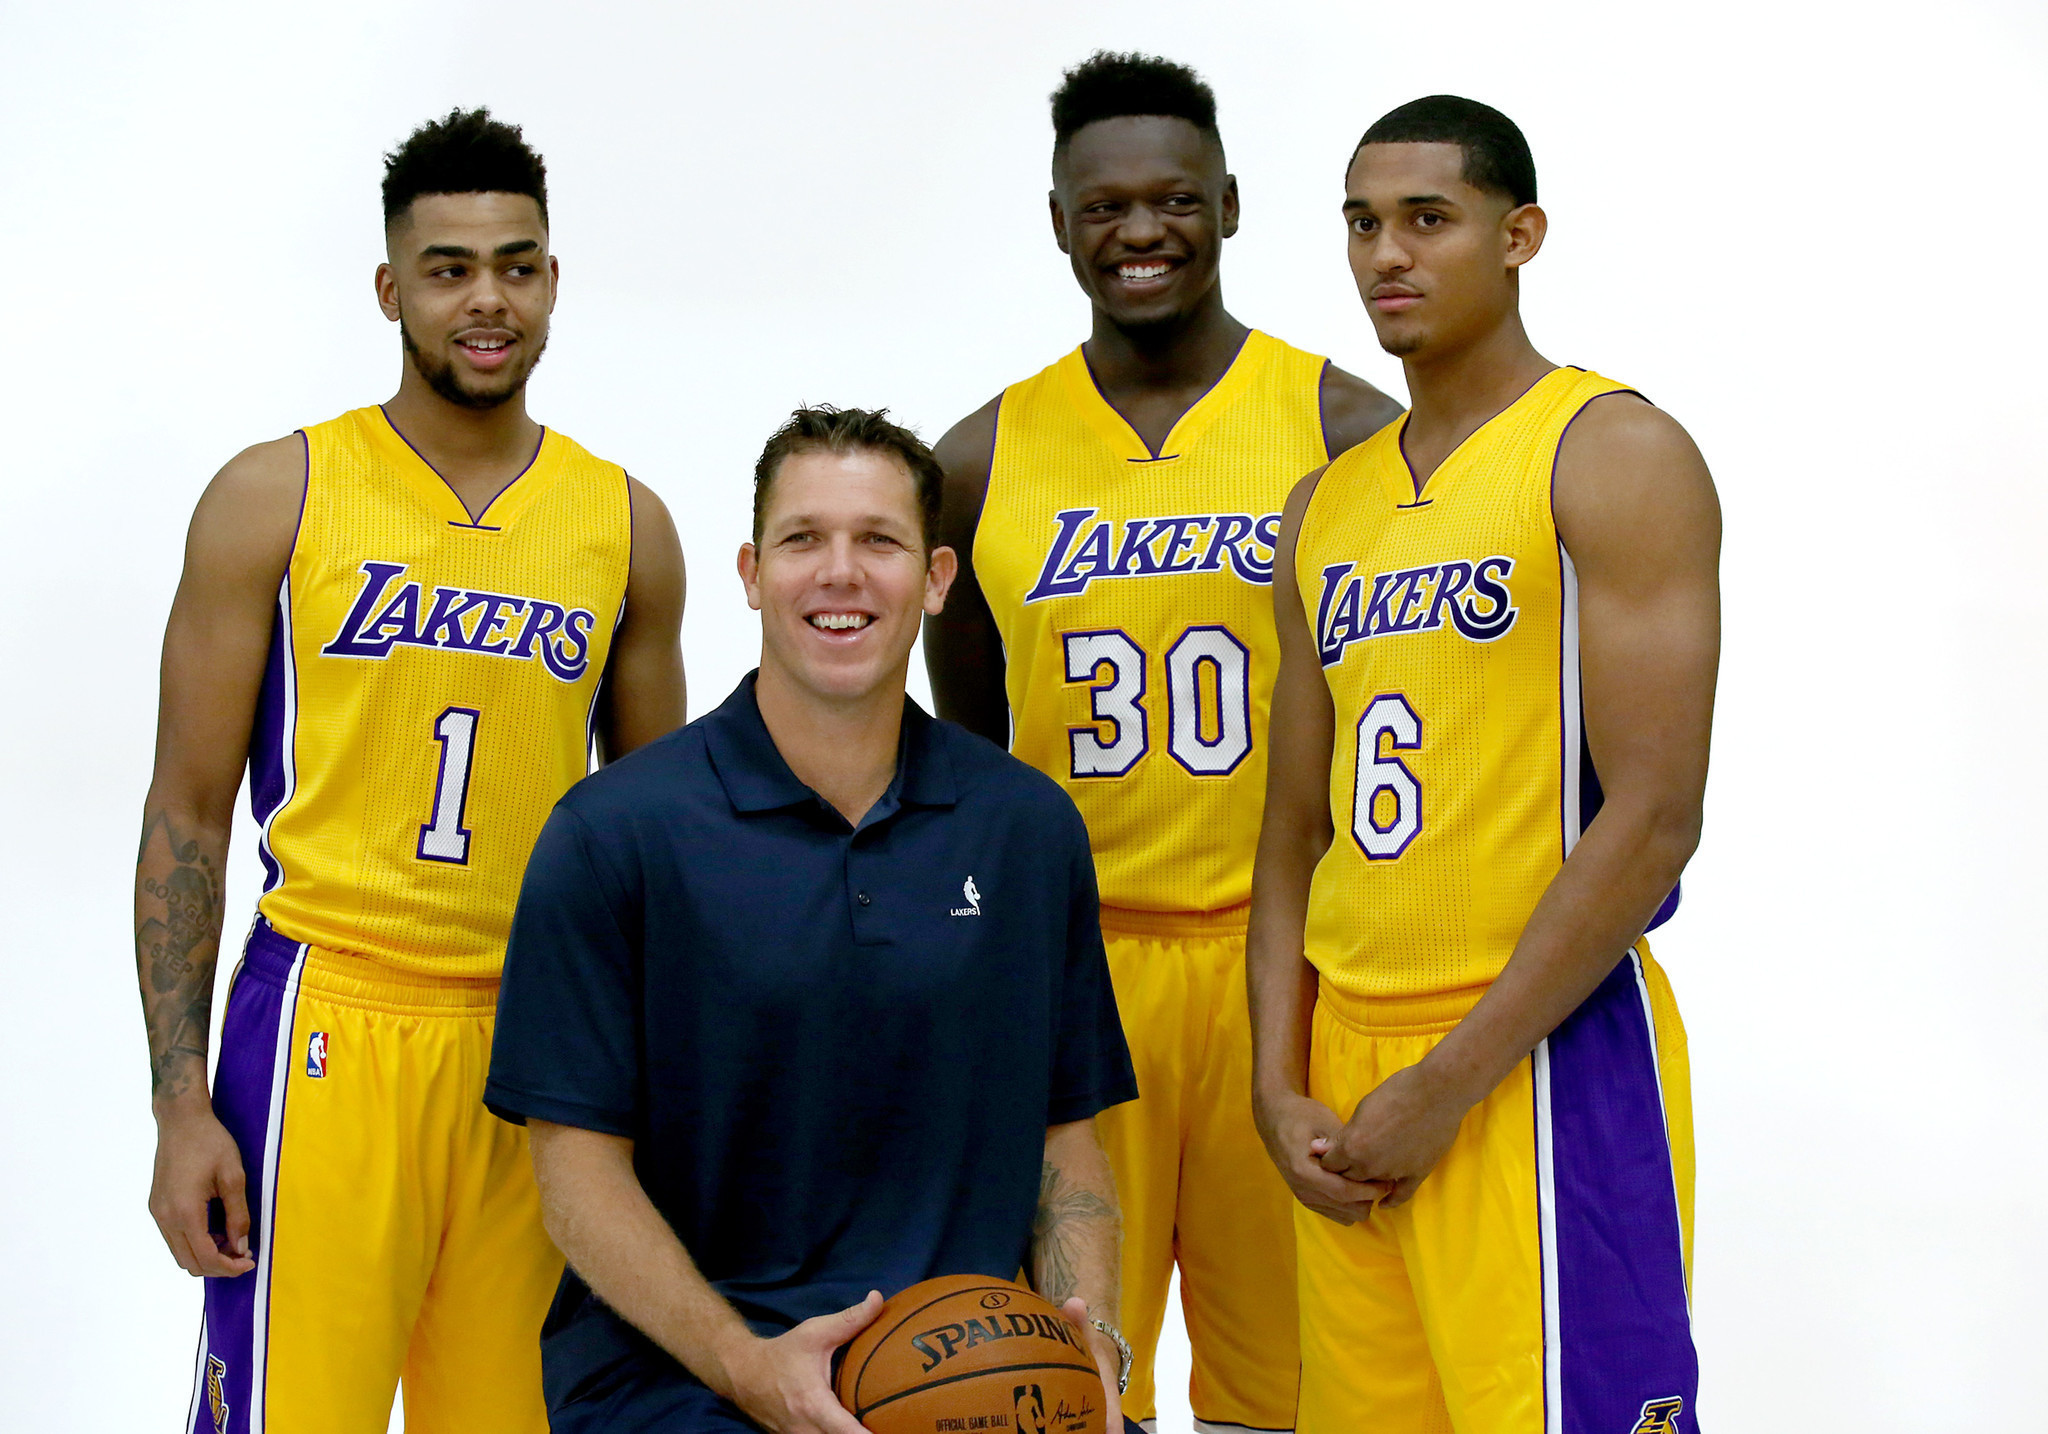 La-sp-lakers-roster-20161022-snap